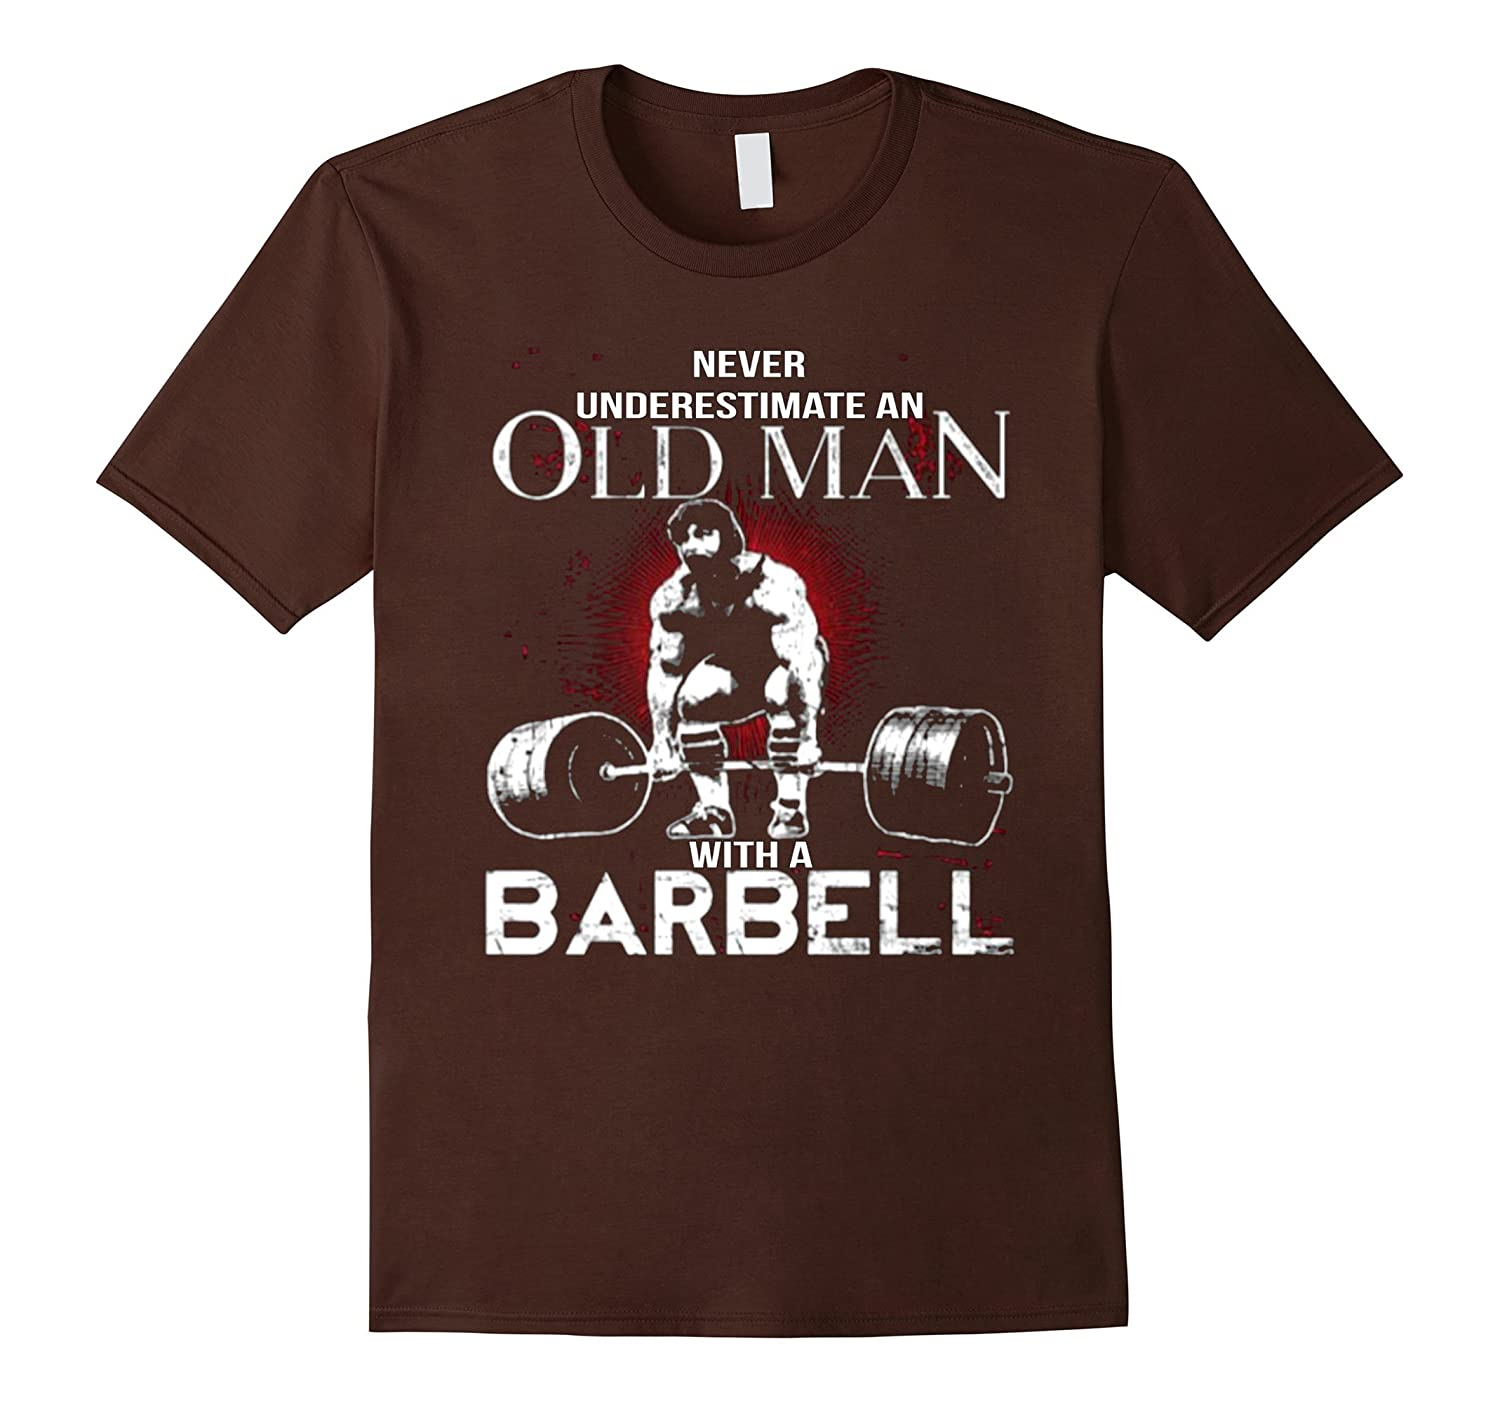 Weider 2980 Home Gym With 214 Lbs Of Resistance: Never Underestimate An Old Man With A Barbell T Shirt-BN